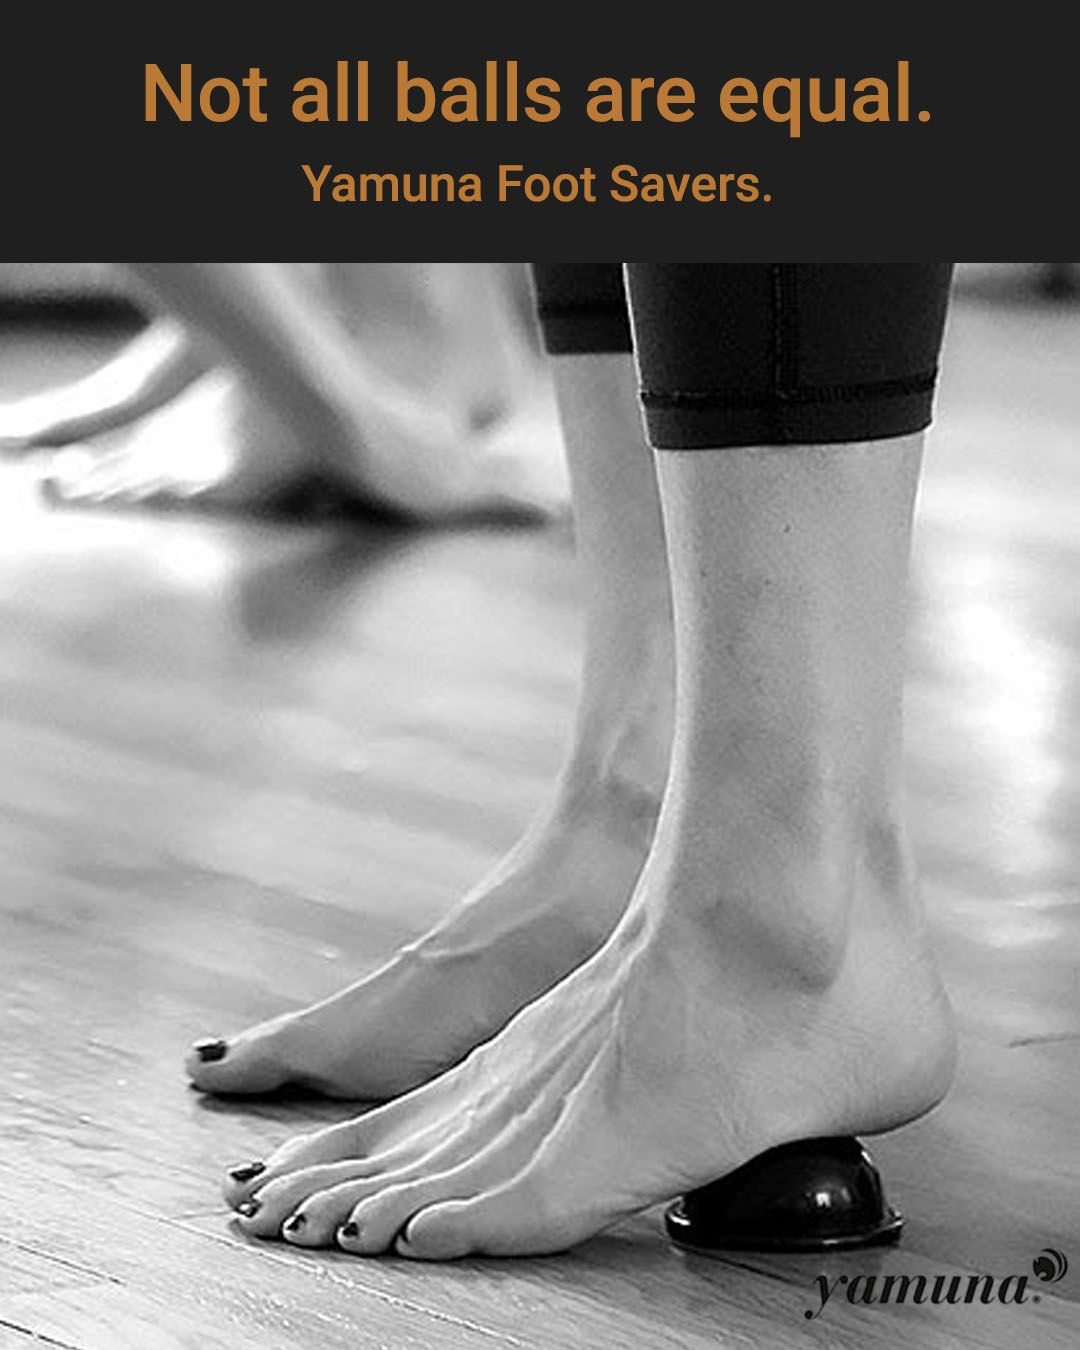 Yamuna Foot Savers Our Intermediate To Advanced Foot Fitness Product Will Improve Gait Alignment And Muscle Tone Stimulate Reflexology Points Musculos